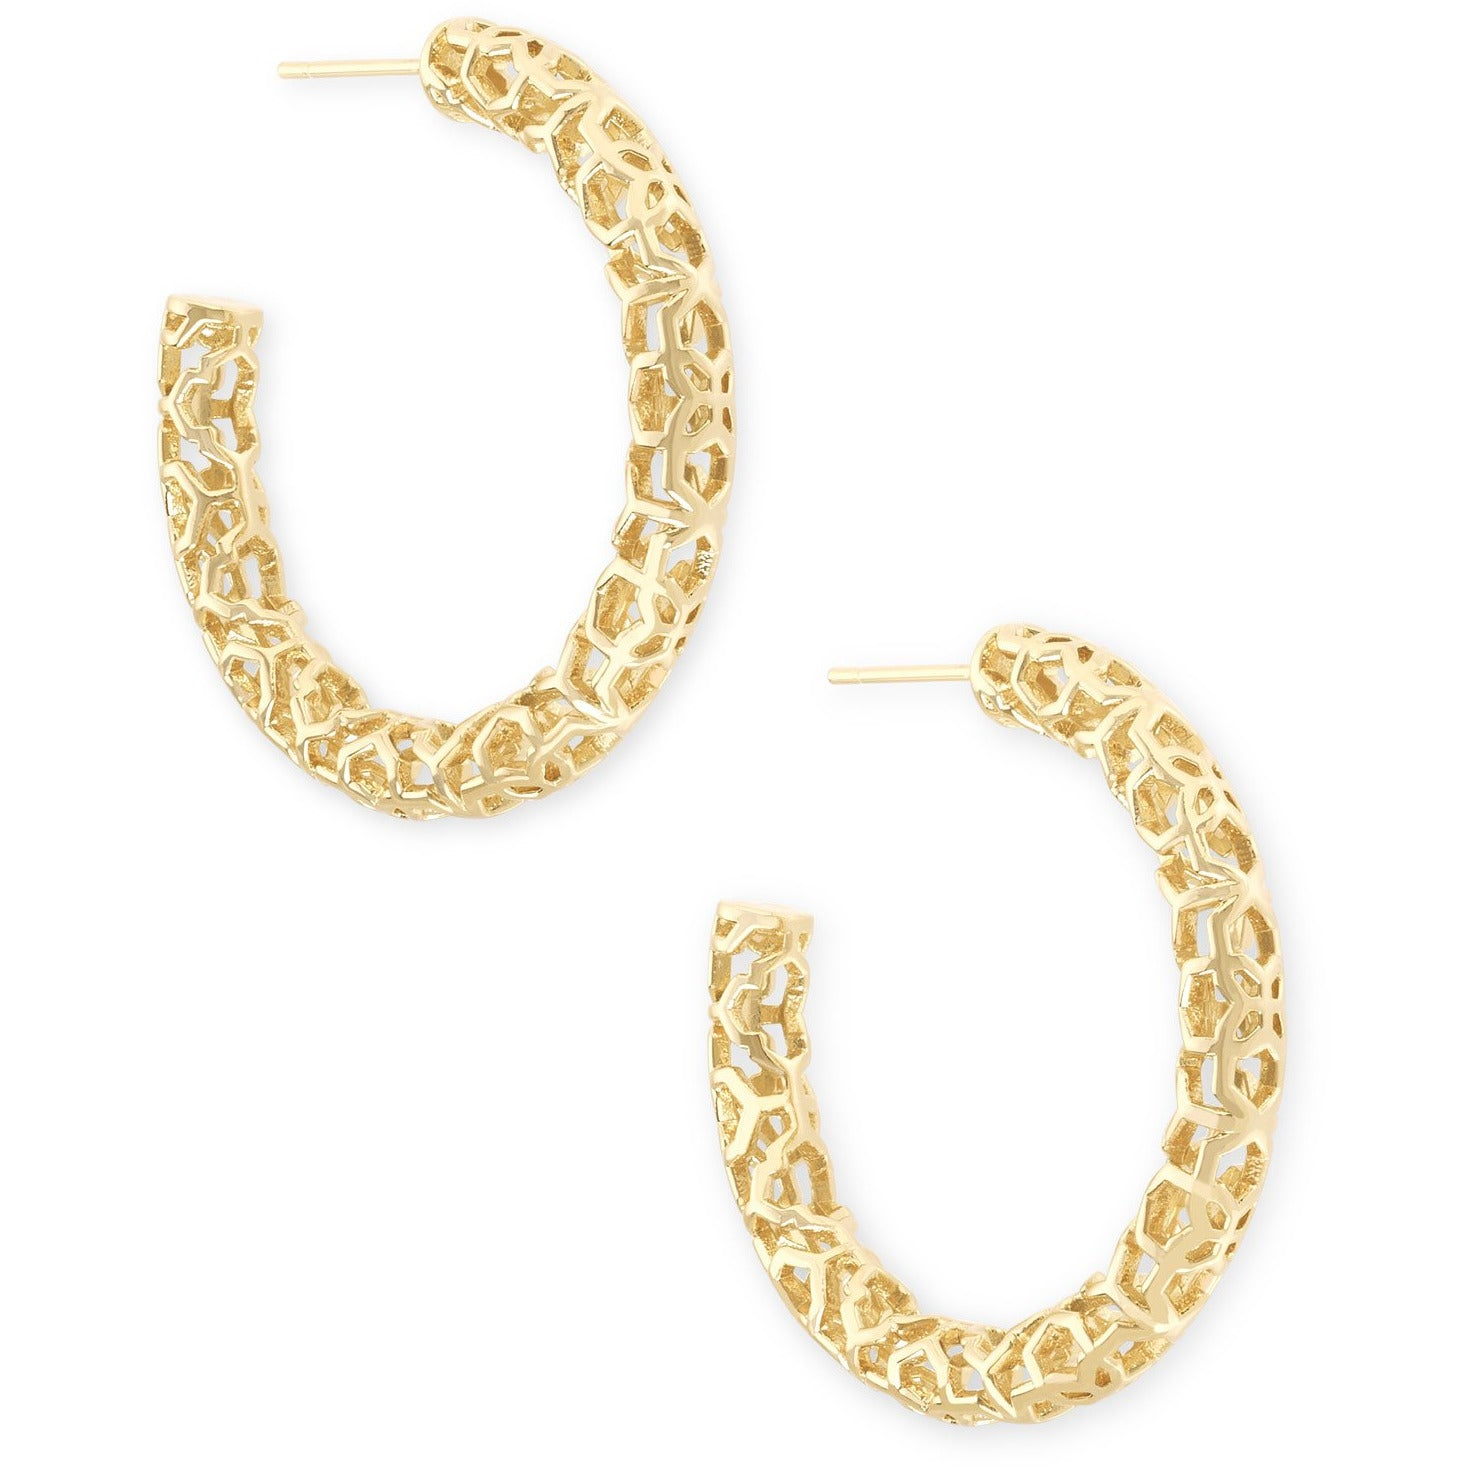 Kendra Scott - Maggie Small Hoop Earrings in Gold Filigree, Front View